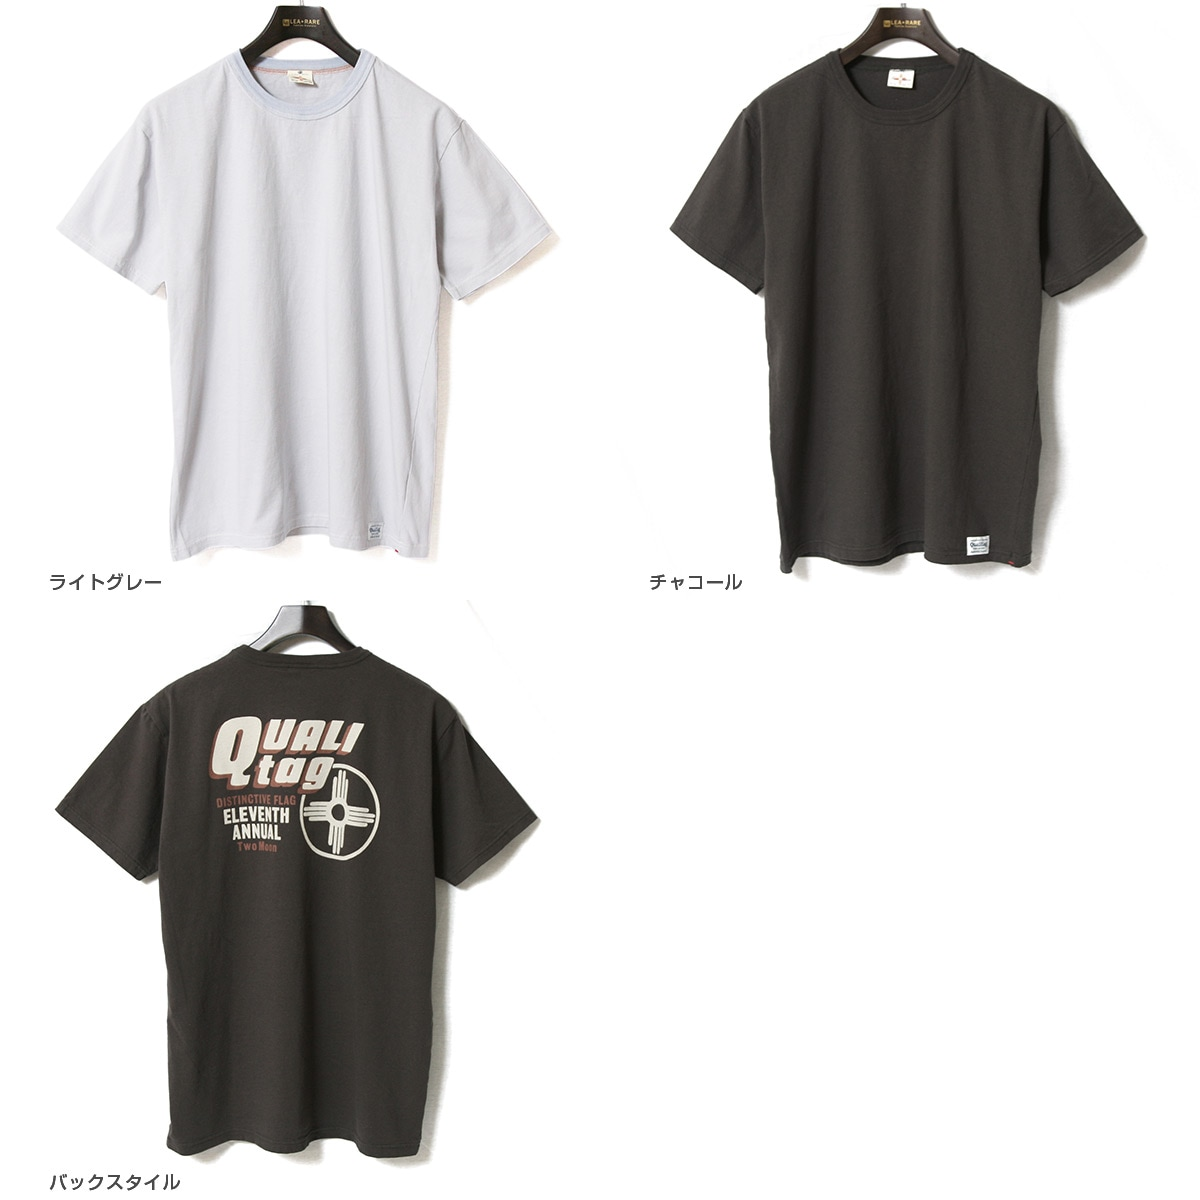 Two Moon トゥームーン プリントTシャツ Qualitag バックプリント 29114